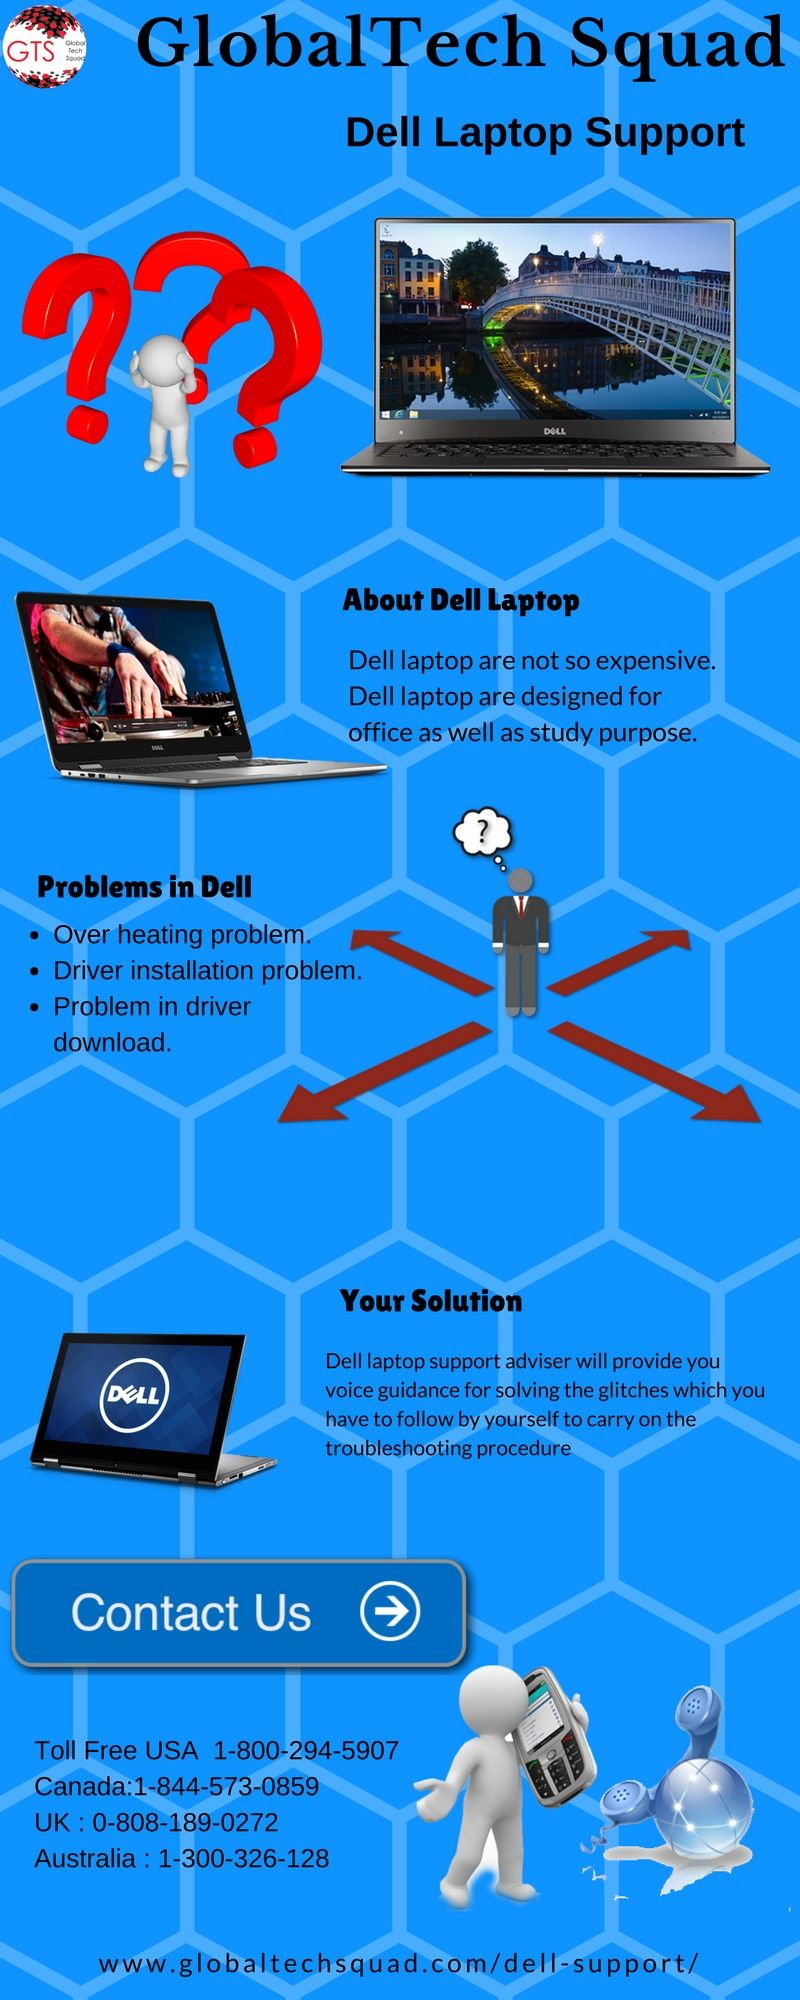 Pin by Ava Smith on GlobalTech Squad Dell laptops